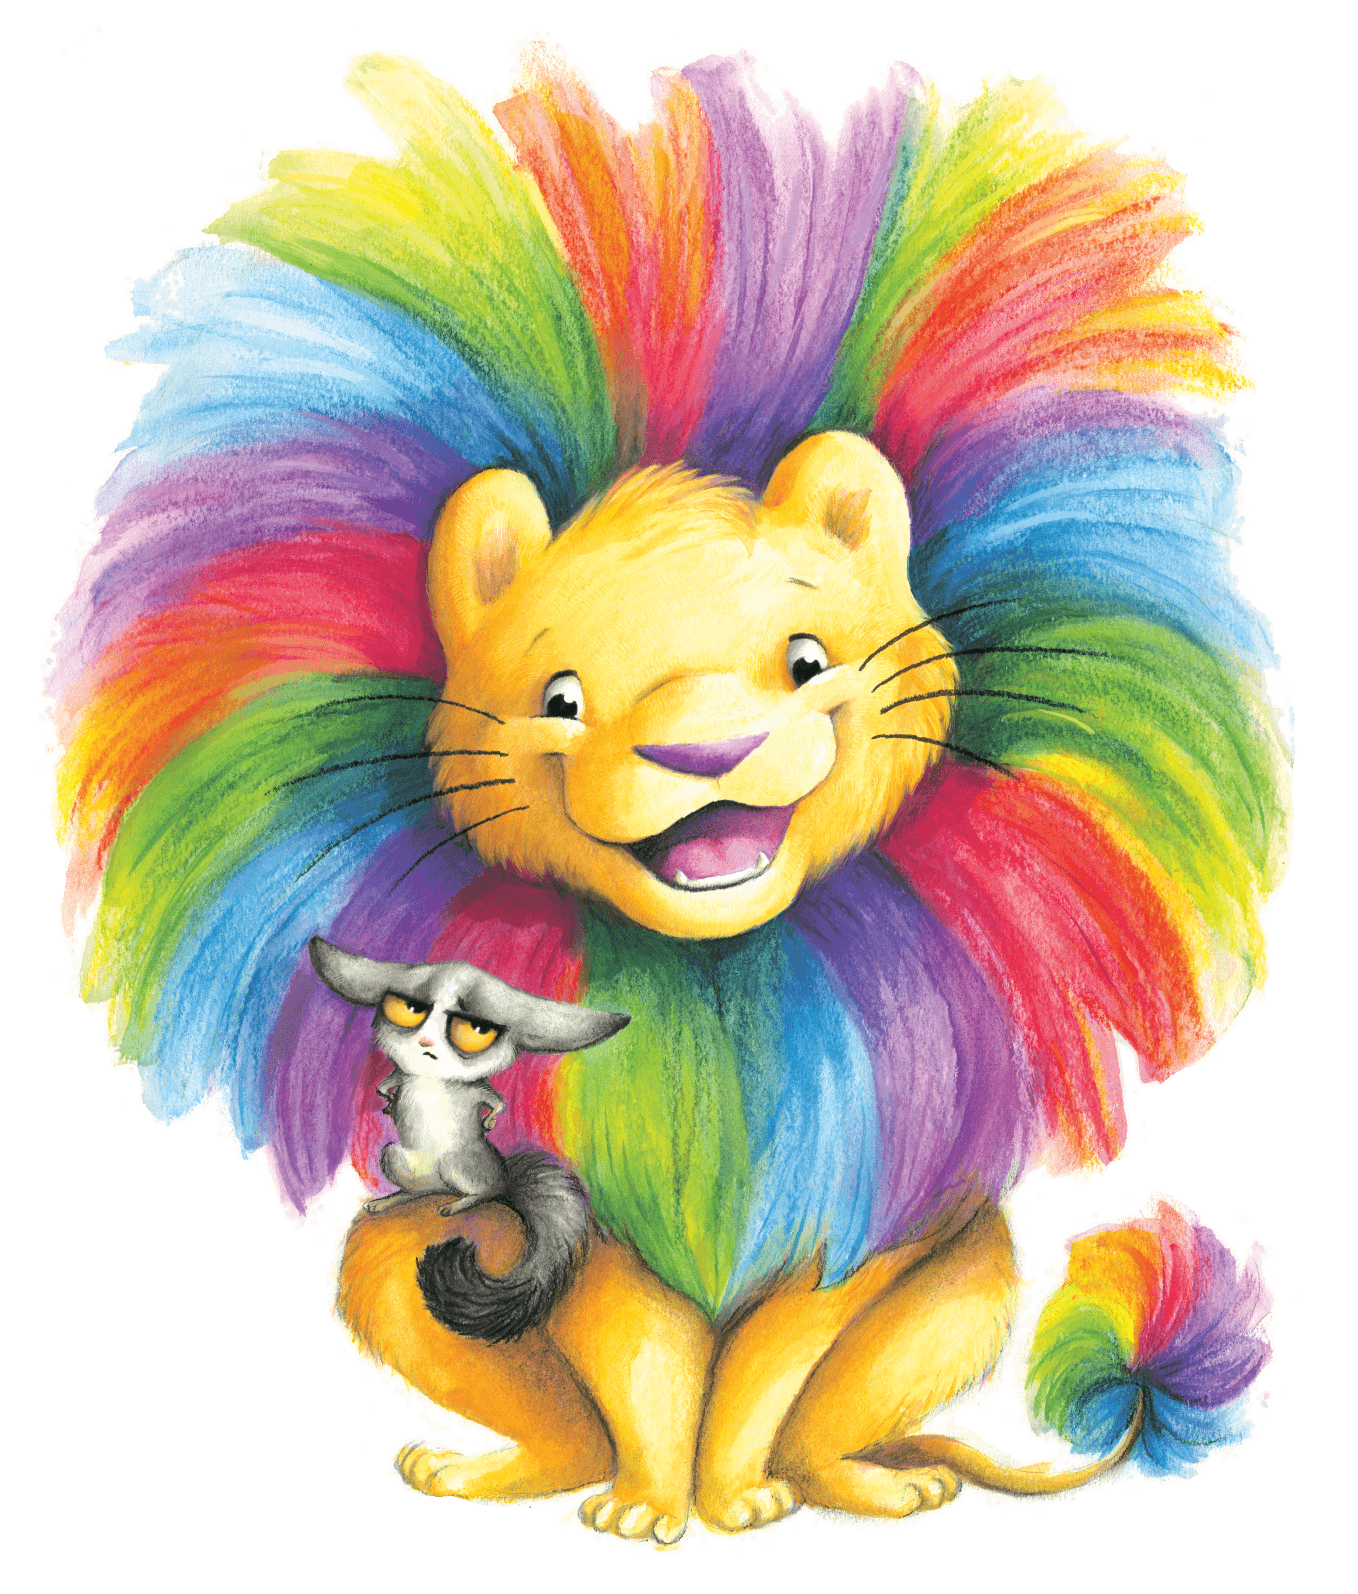 Illustrated Guion the Lion character with colorful mane